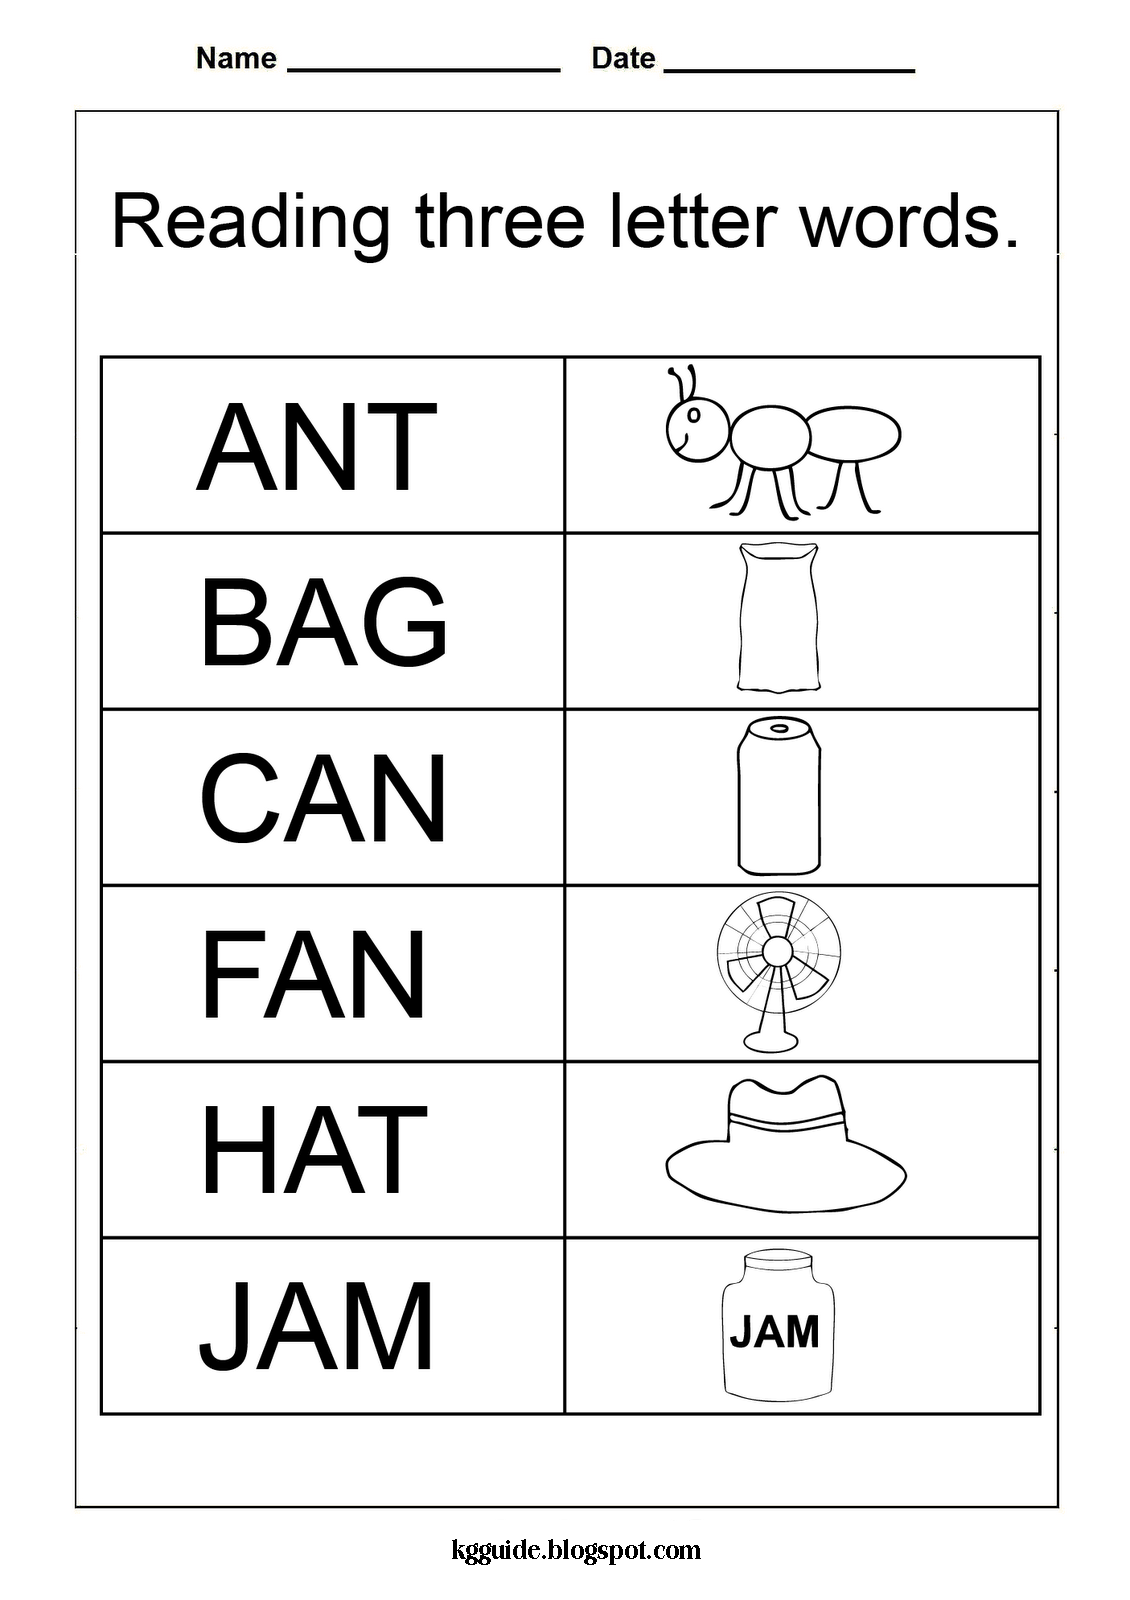 kindergarten worksheet three letter words kindergarten worksheet guide pictures clip art. Black Bedroom Furniture Sets. Home Design Ideas